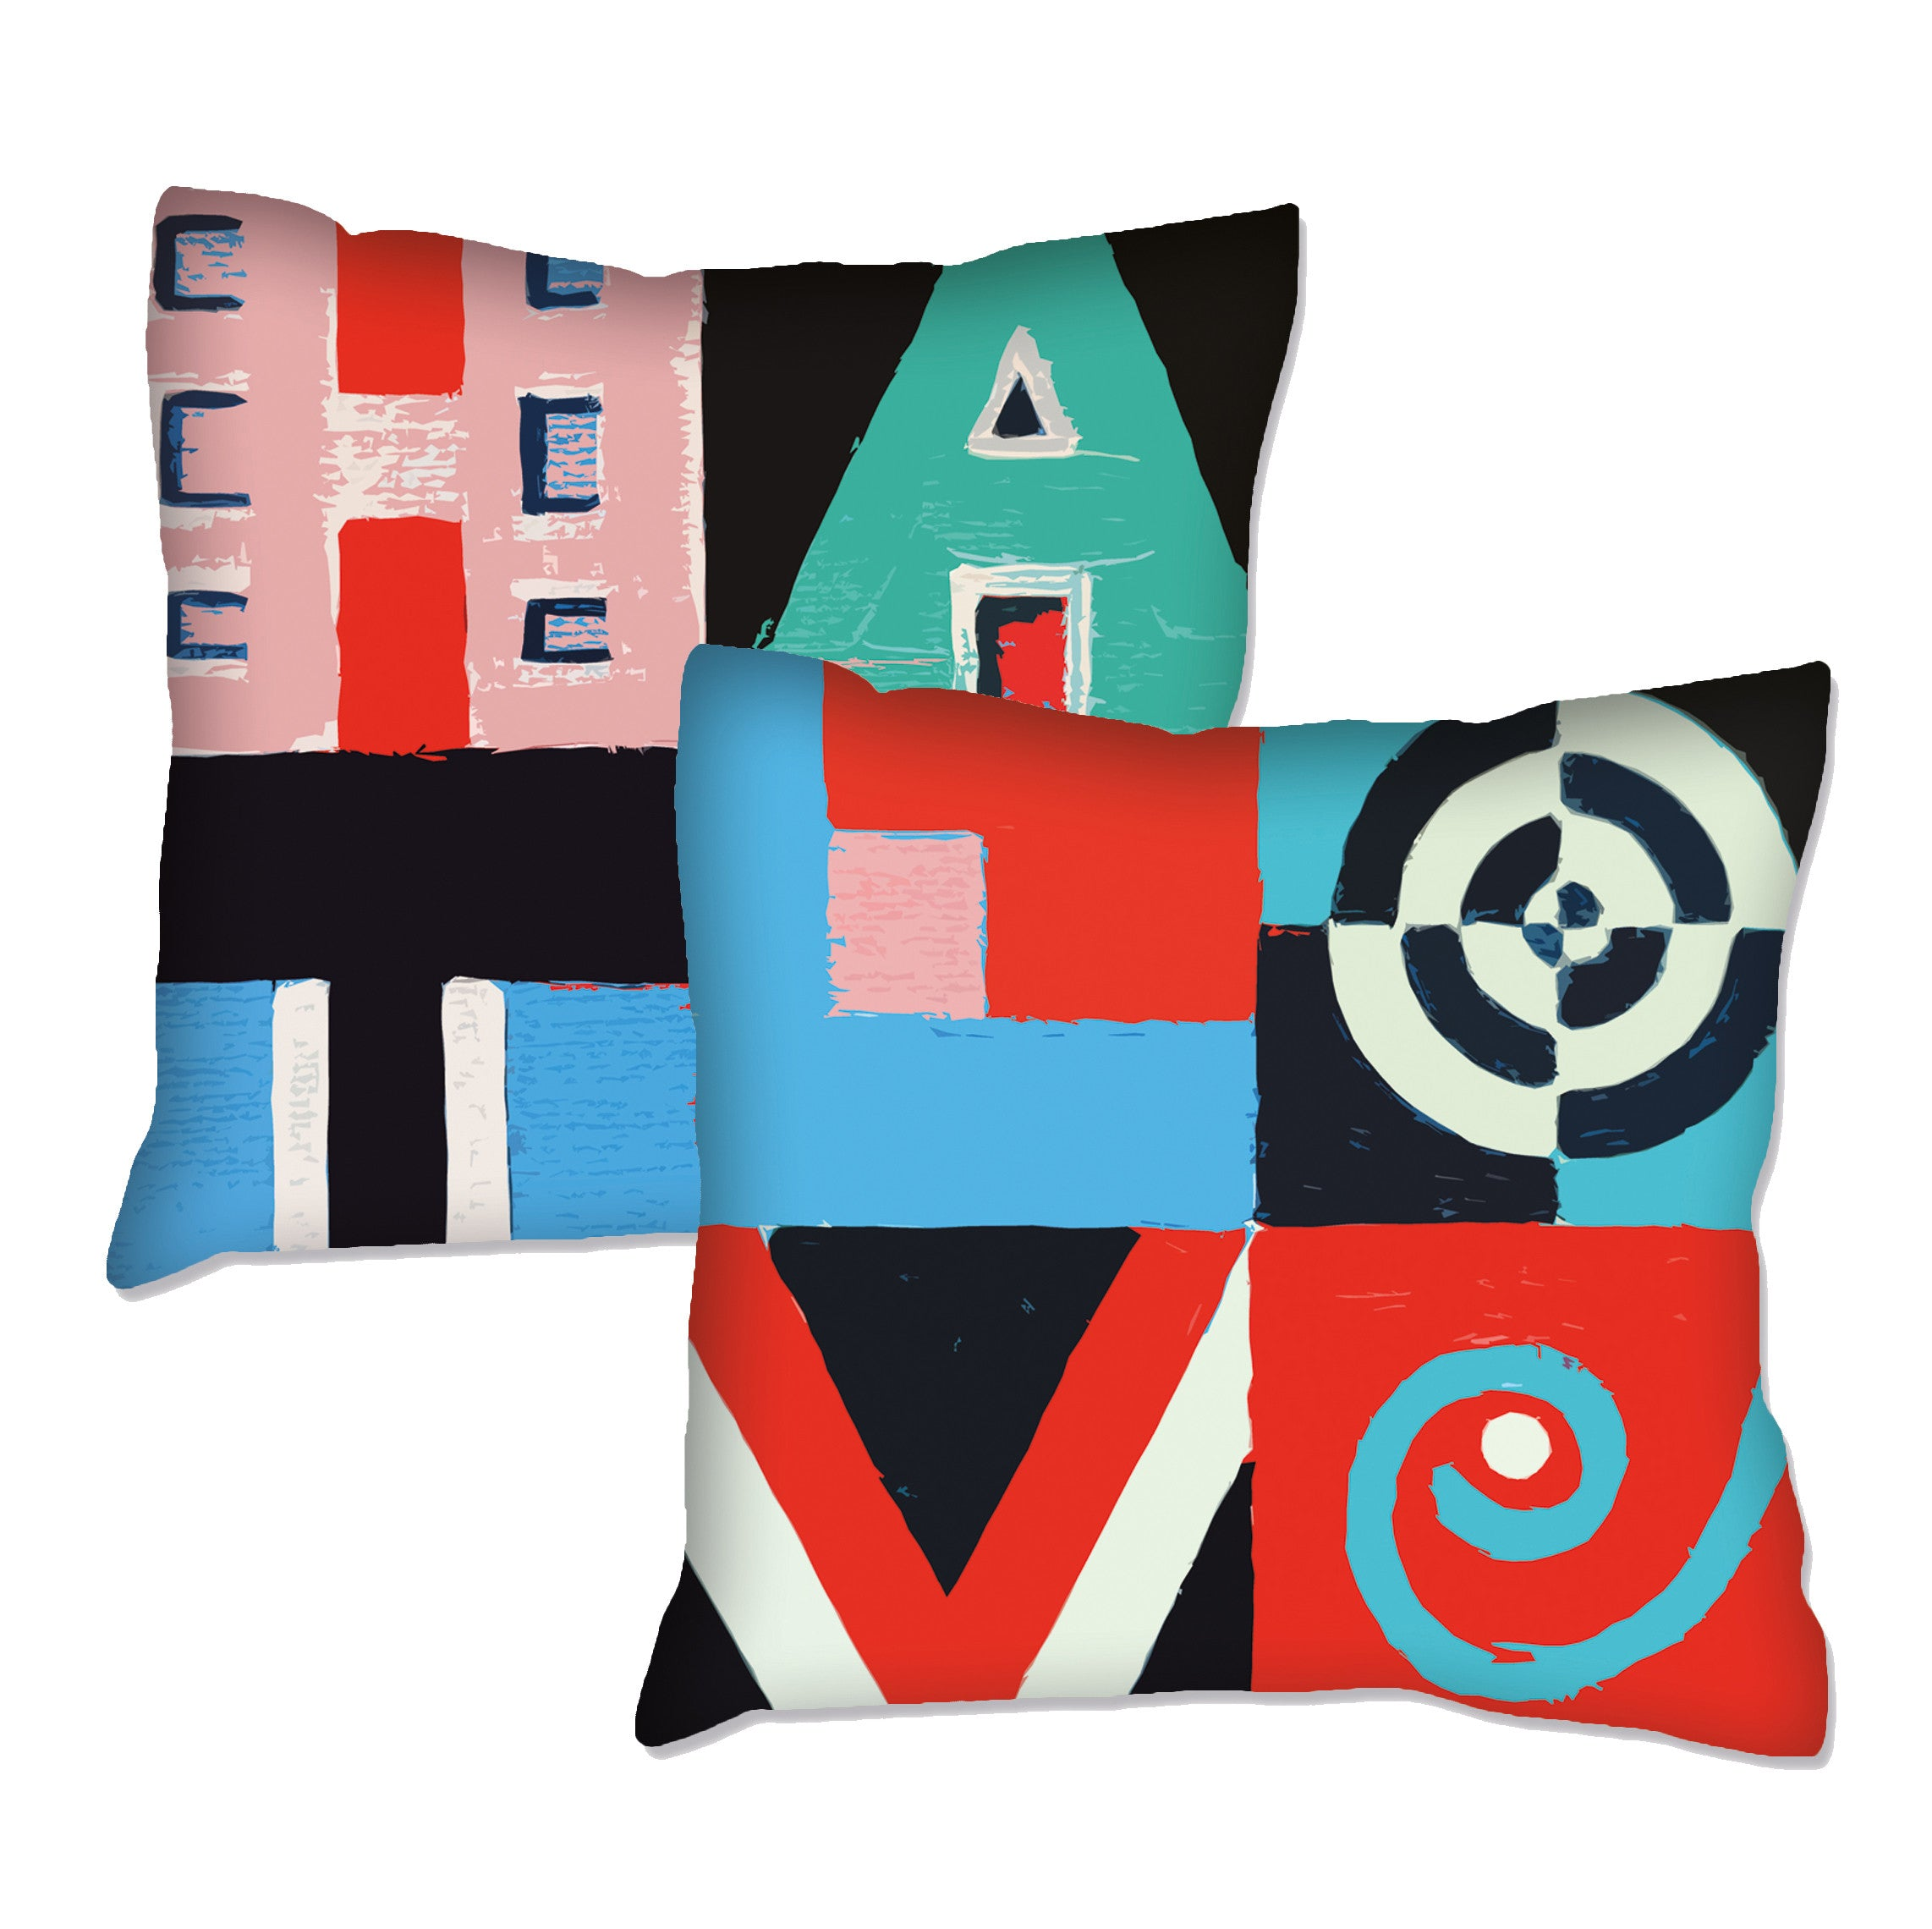 The Love / Hate Double Sided Word Art Cushion  Smart Deco Homeware Lighting and Art by Jacqueline hammond